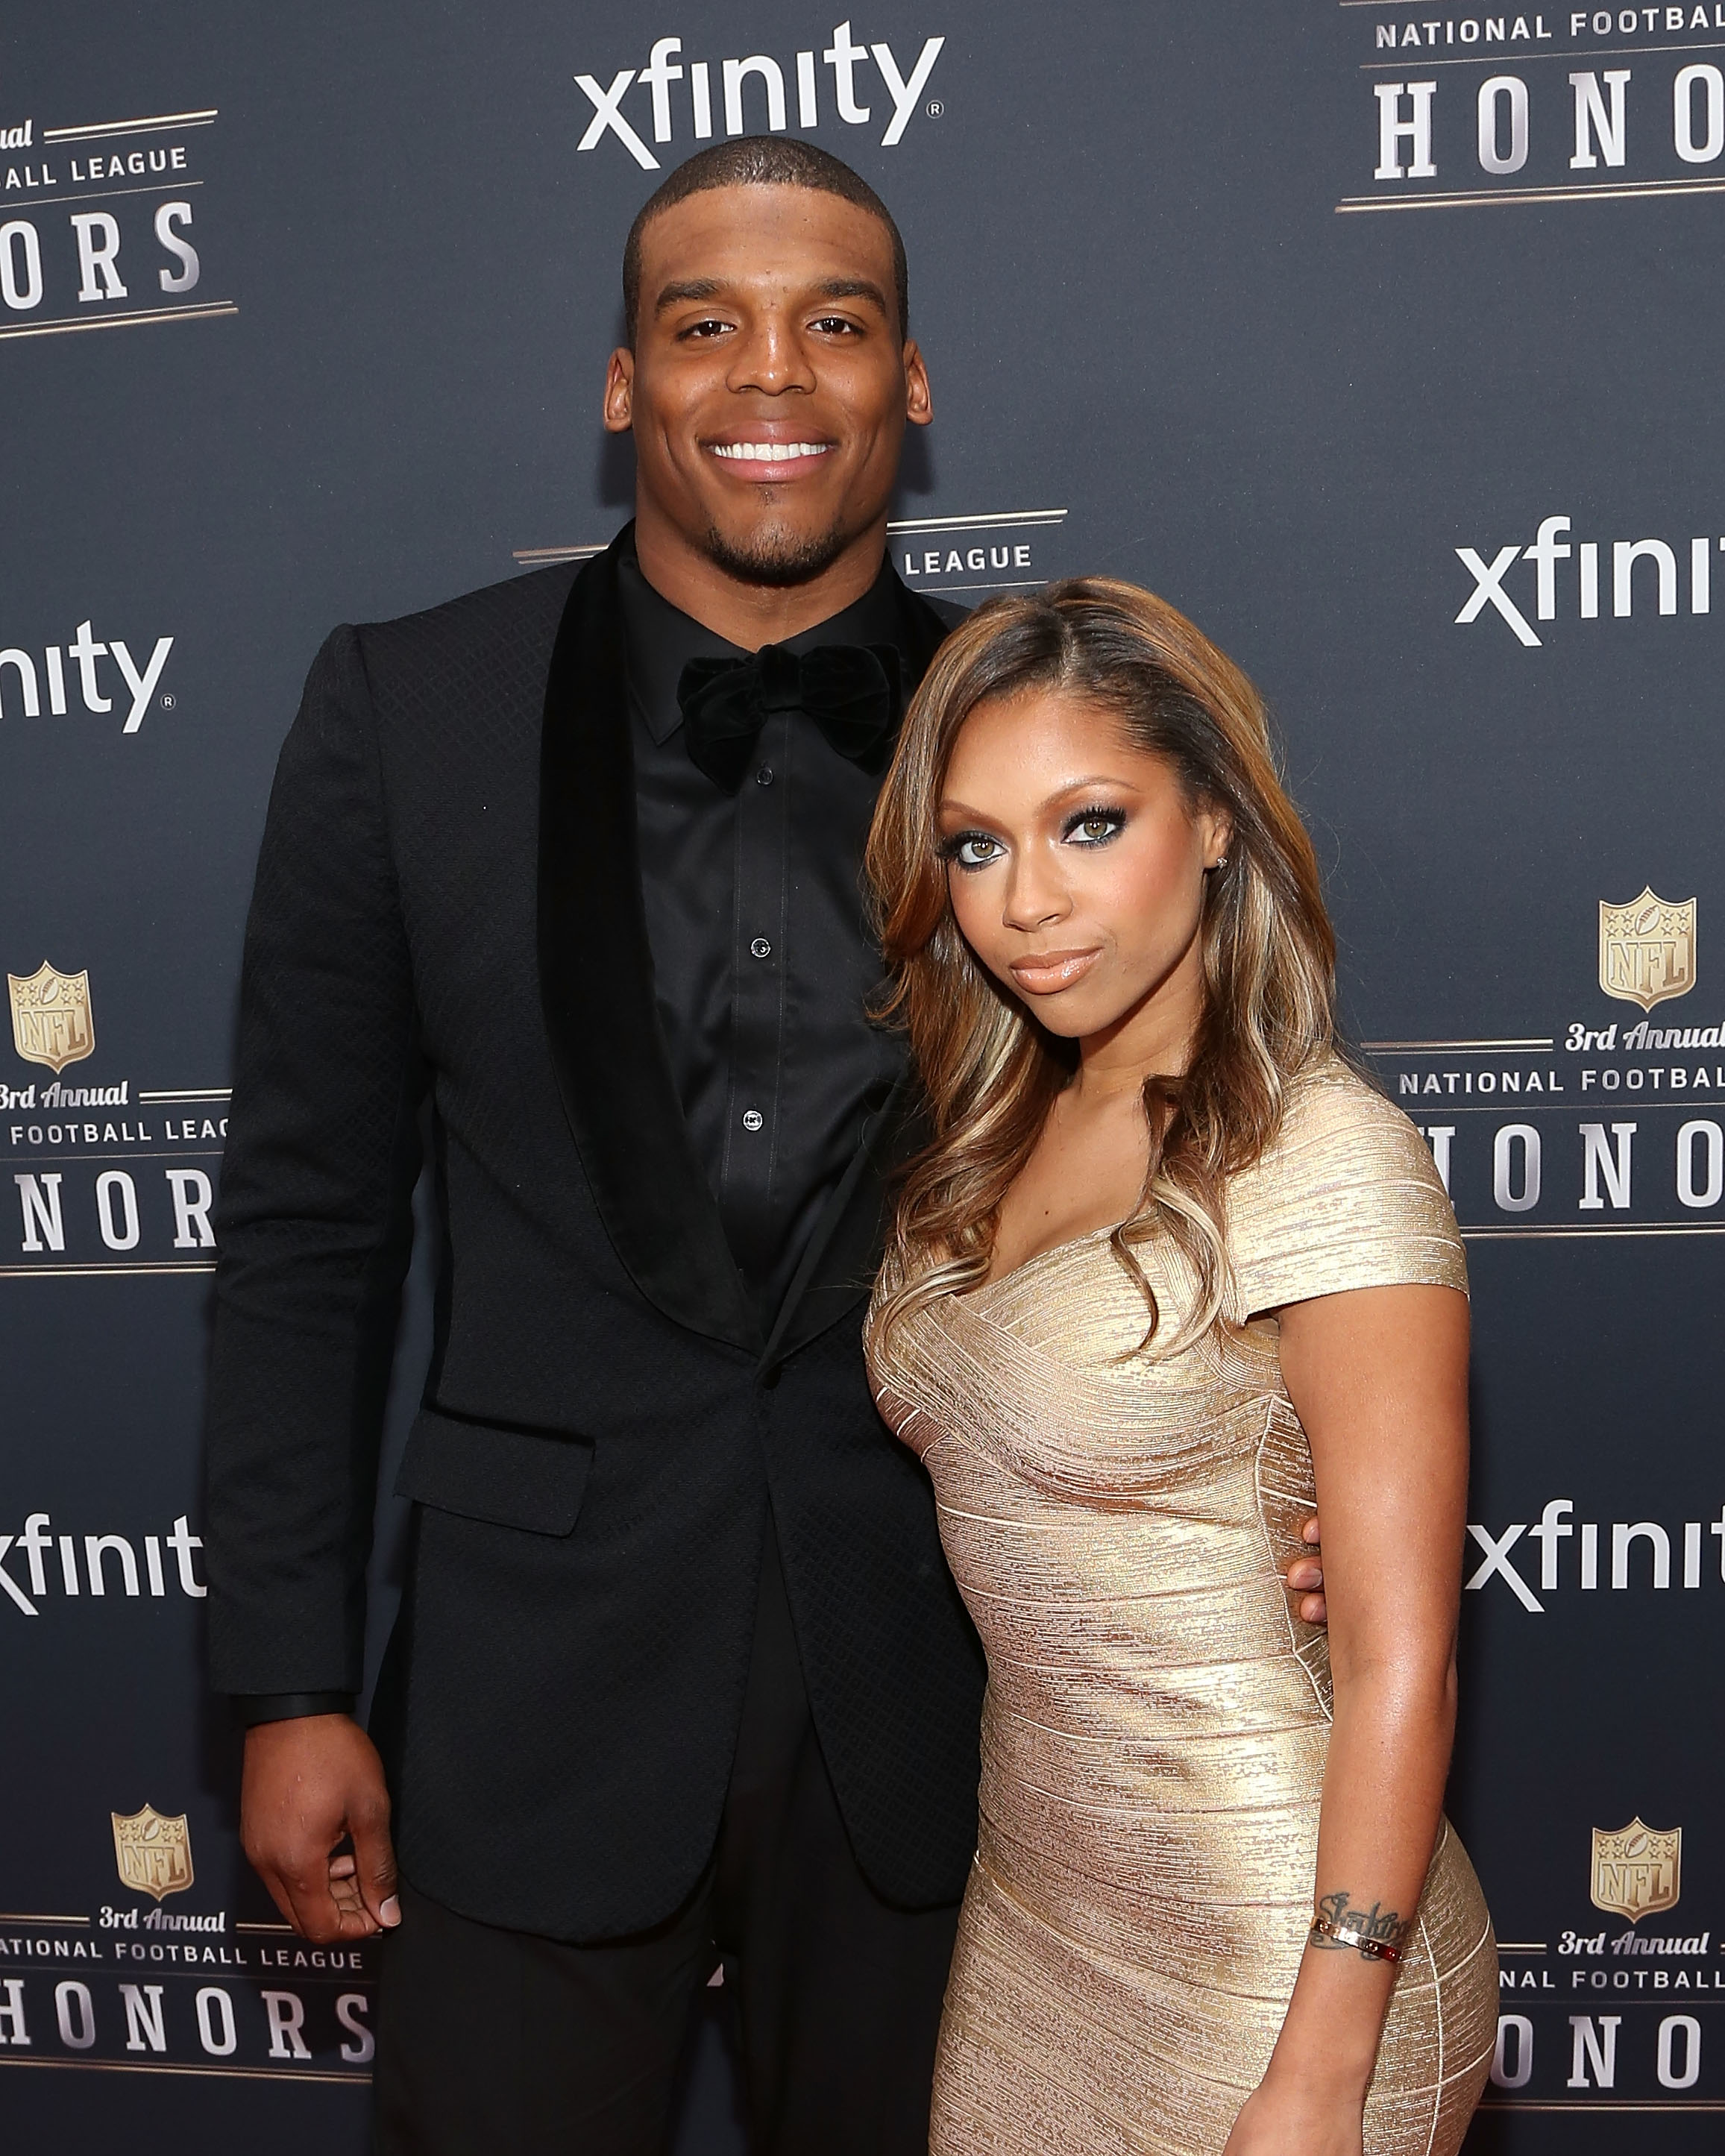 3rd Annual NFL Honors